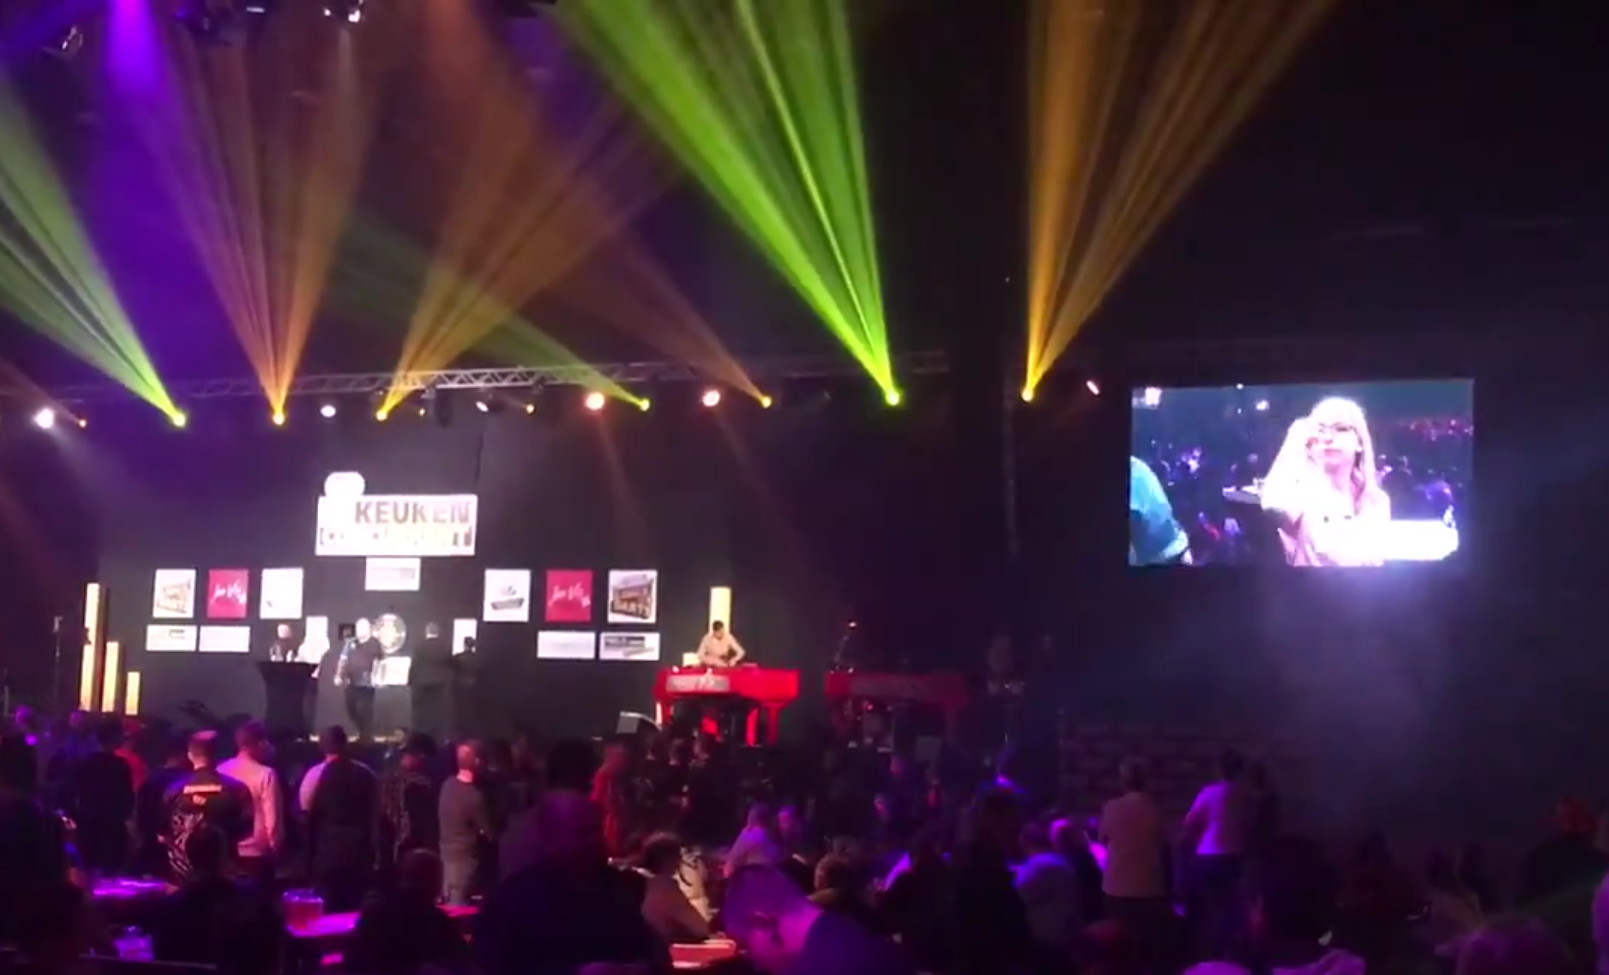 VIDEO: Fallon Sherrock Beats Darryl Fitton At Kings of Darts